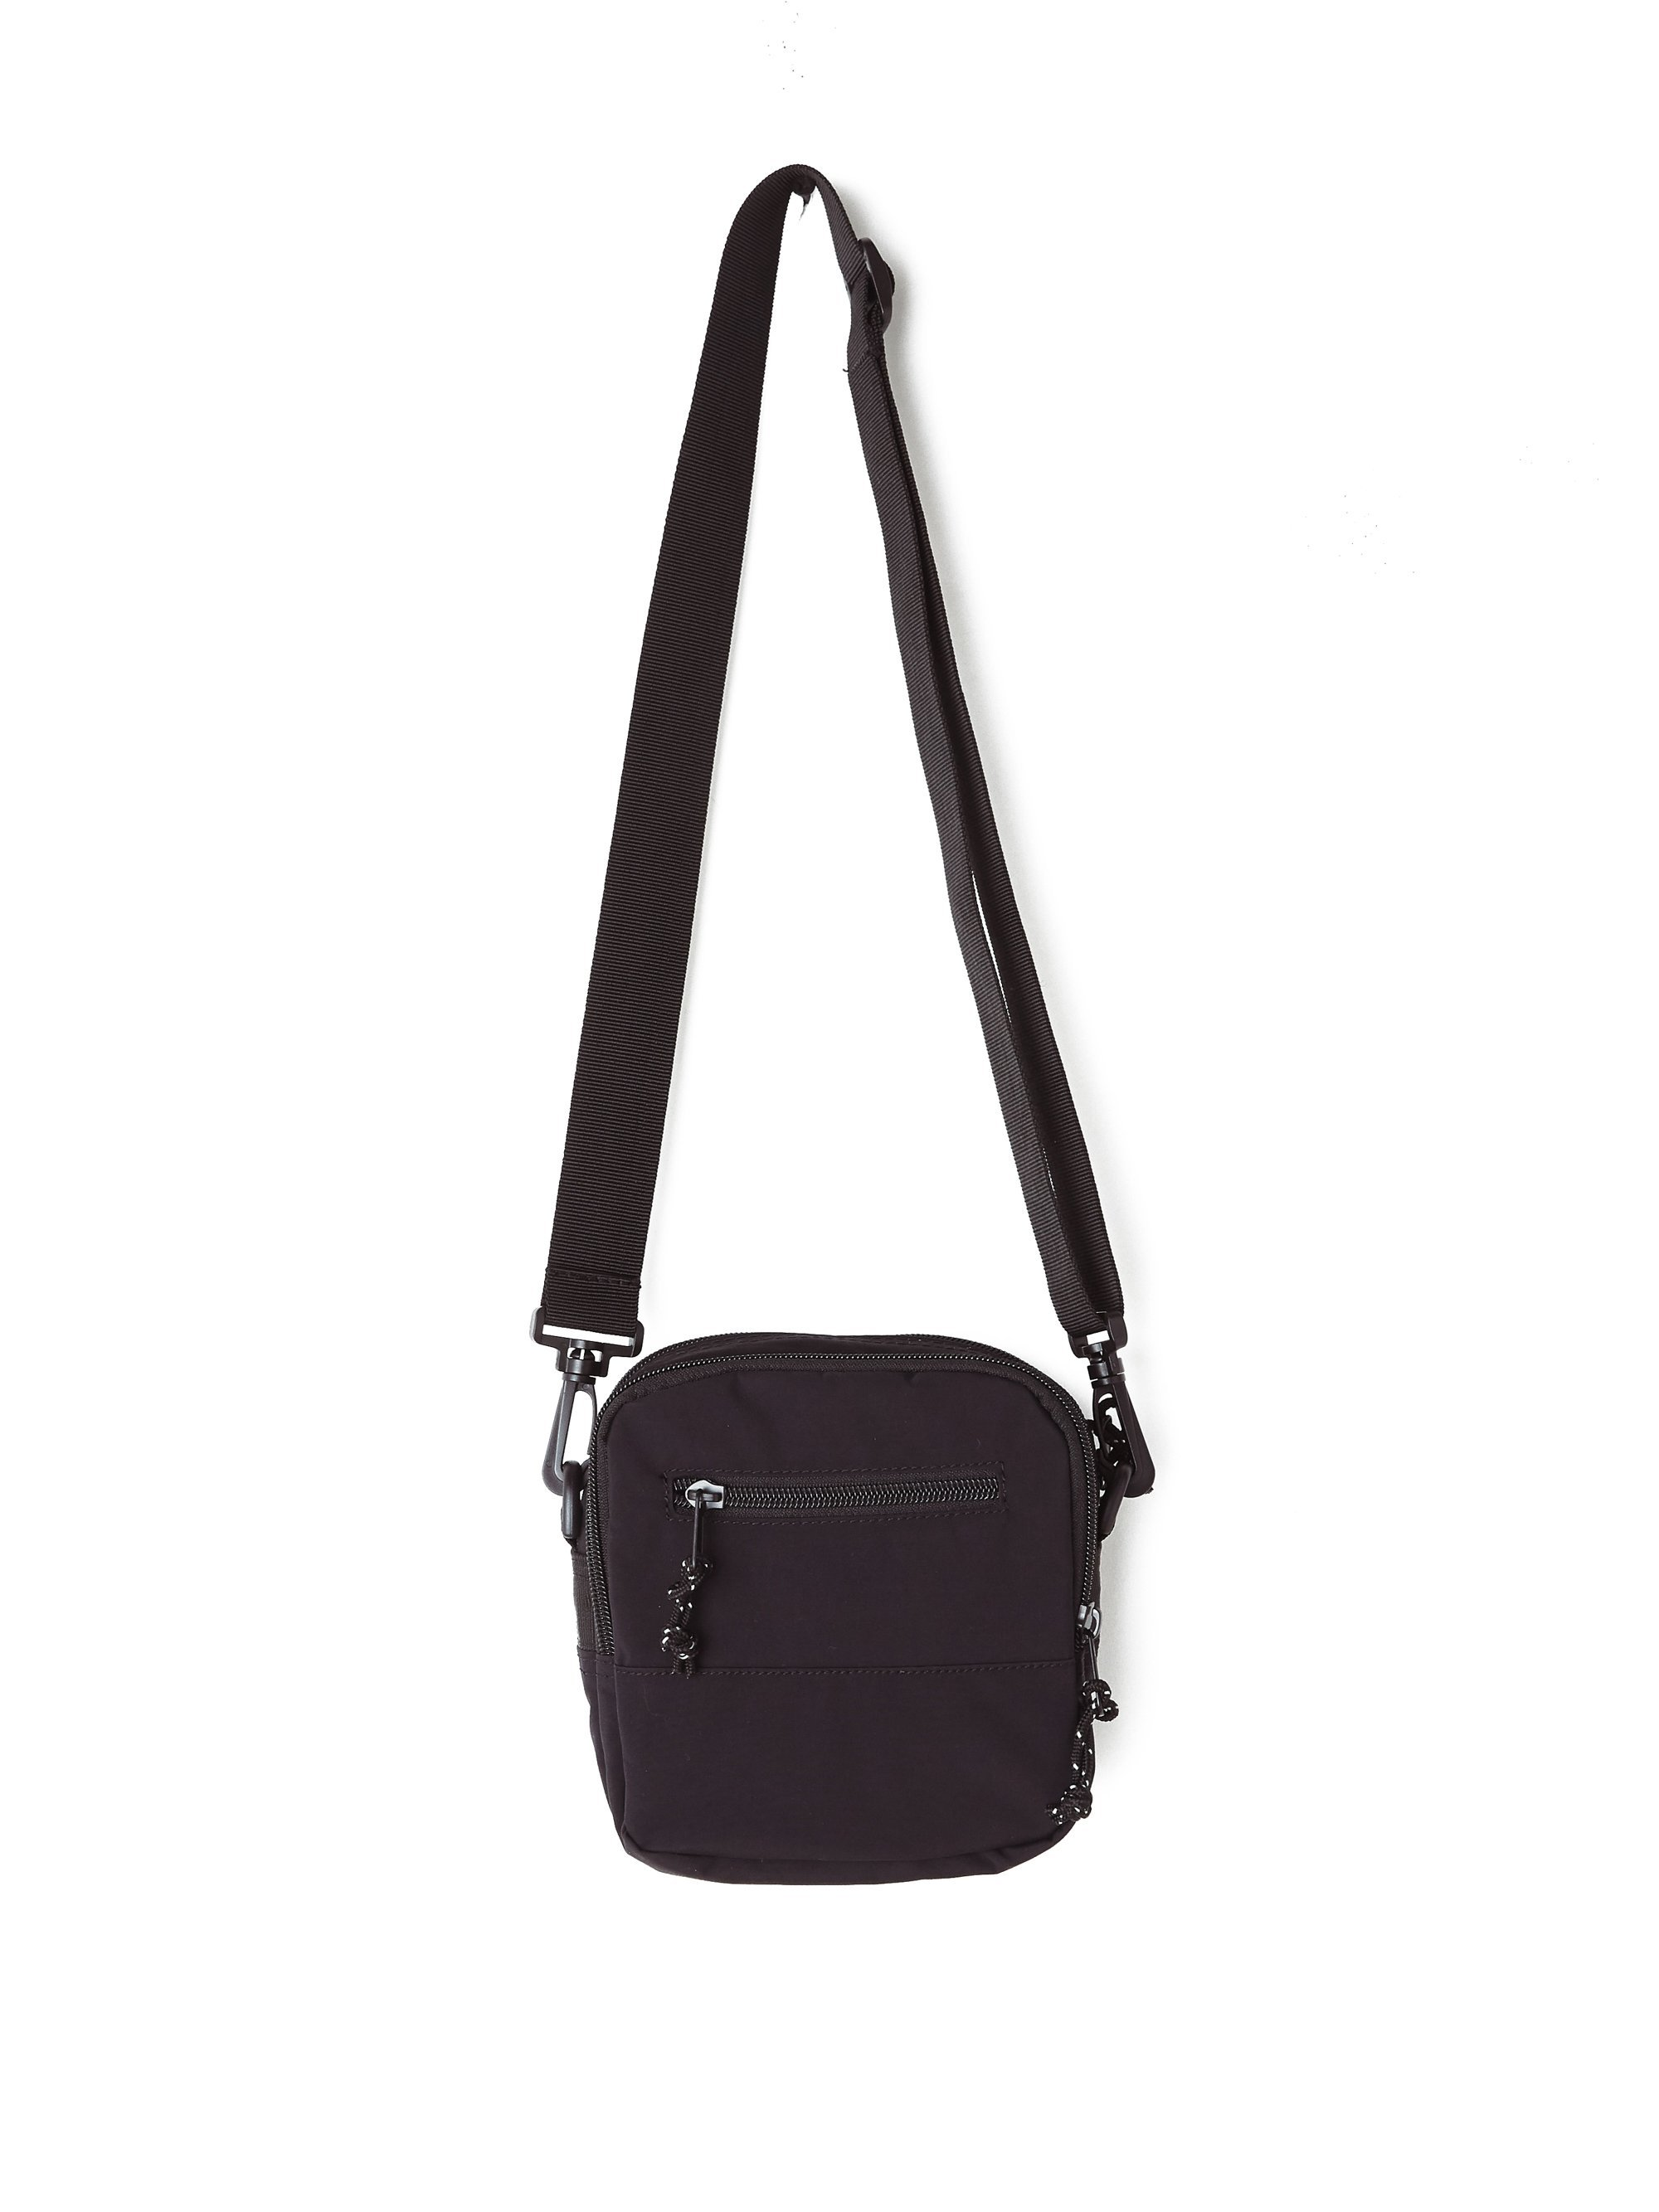 OBEY_Conditions_Traveler_Bag_100010109_BLK_2_2000x.jpg